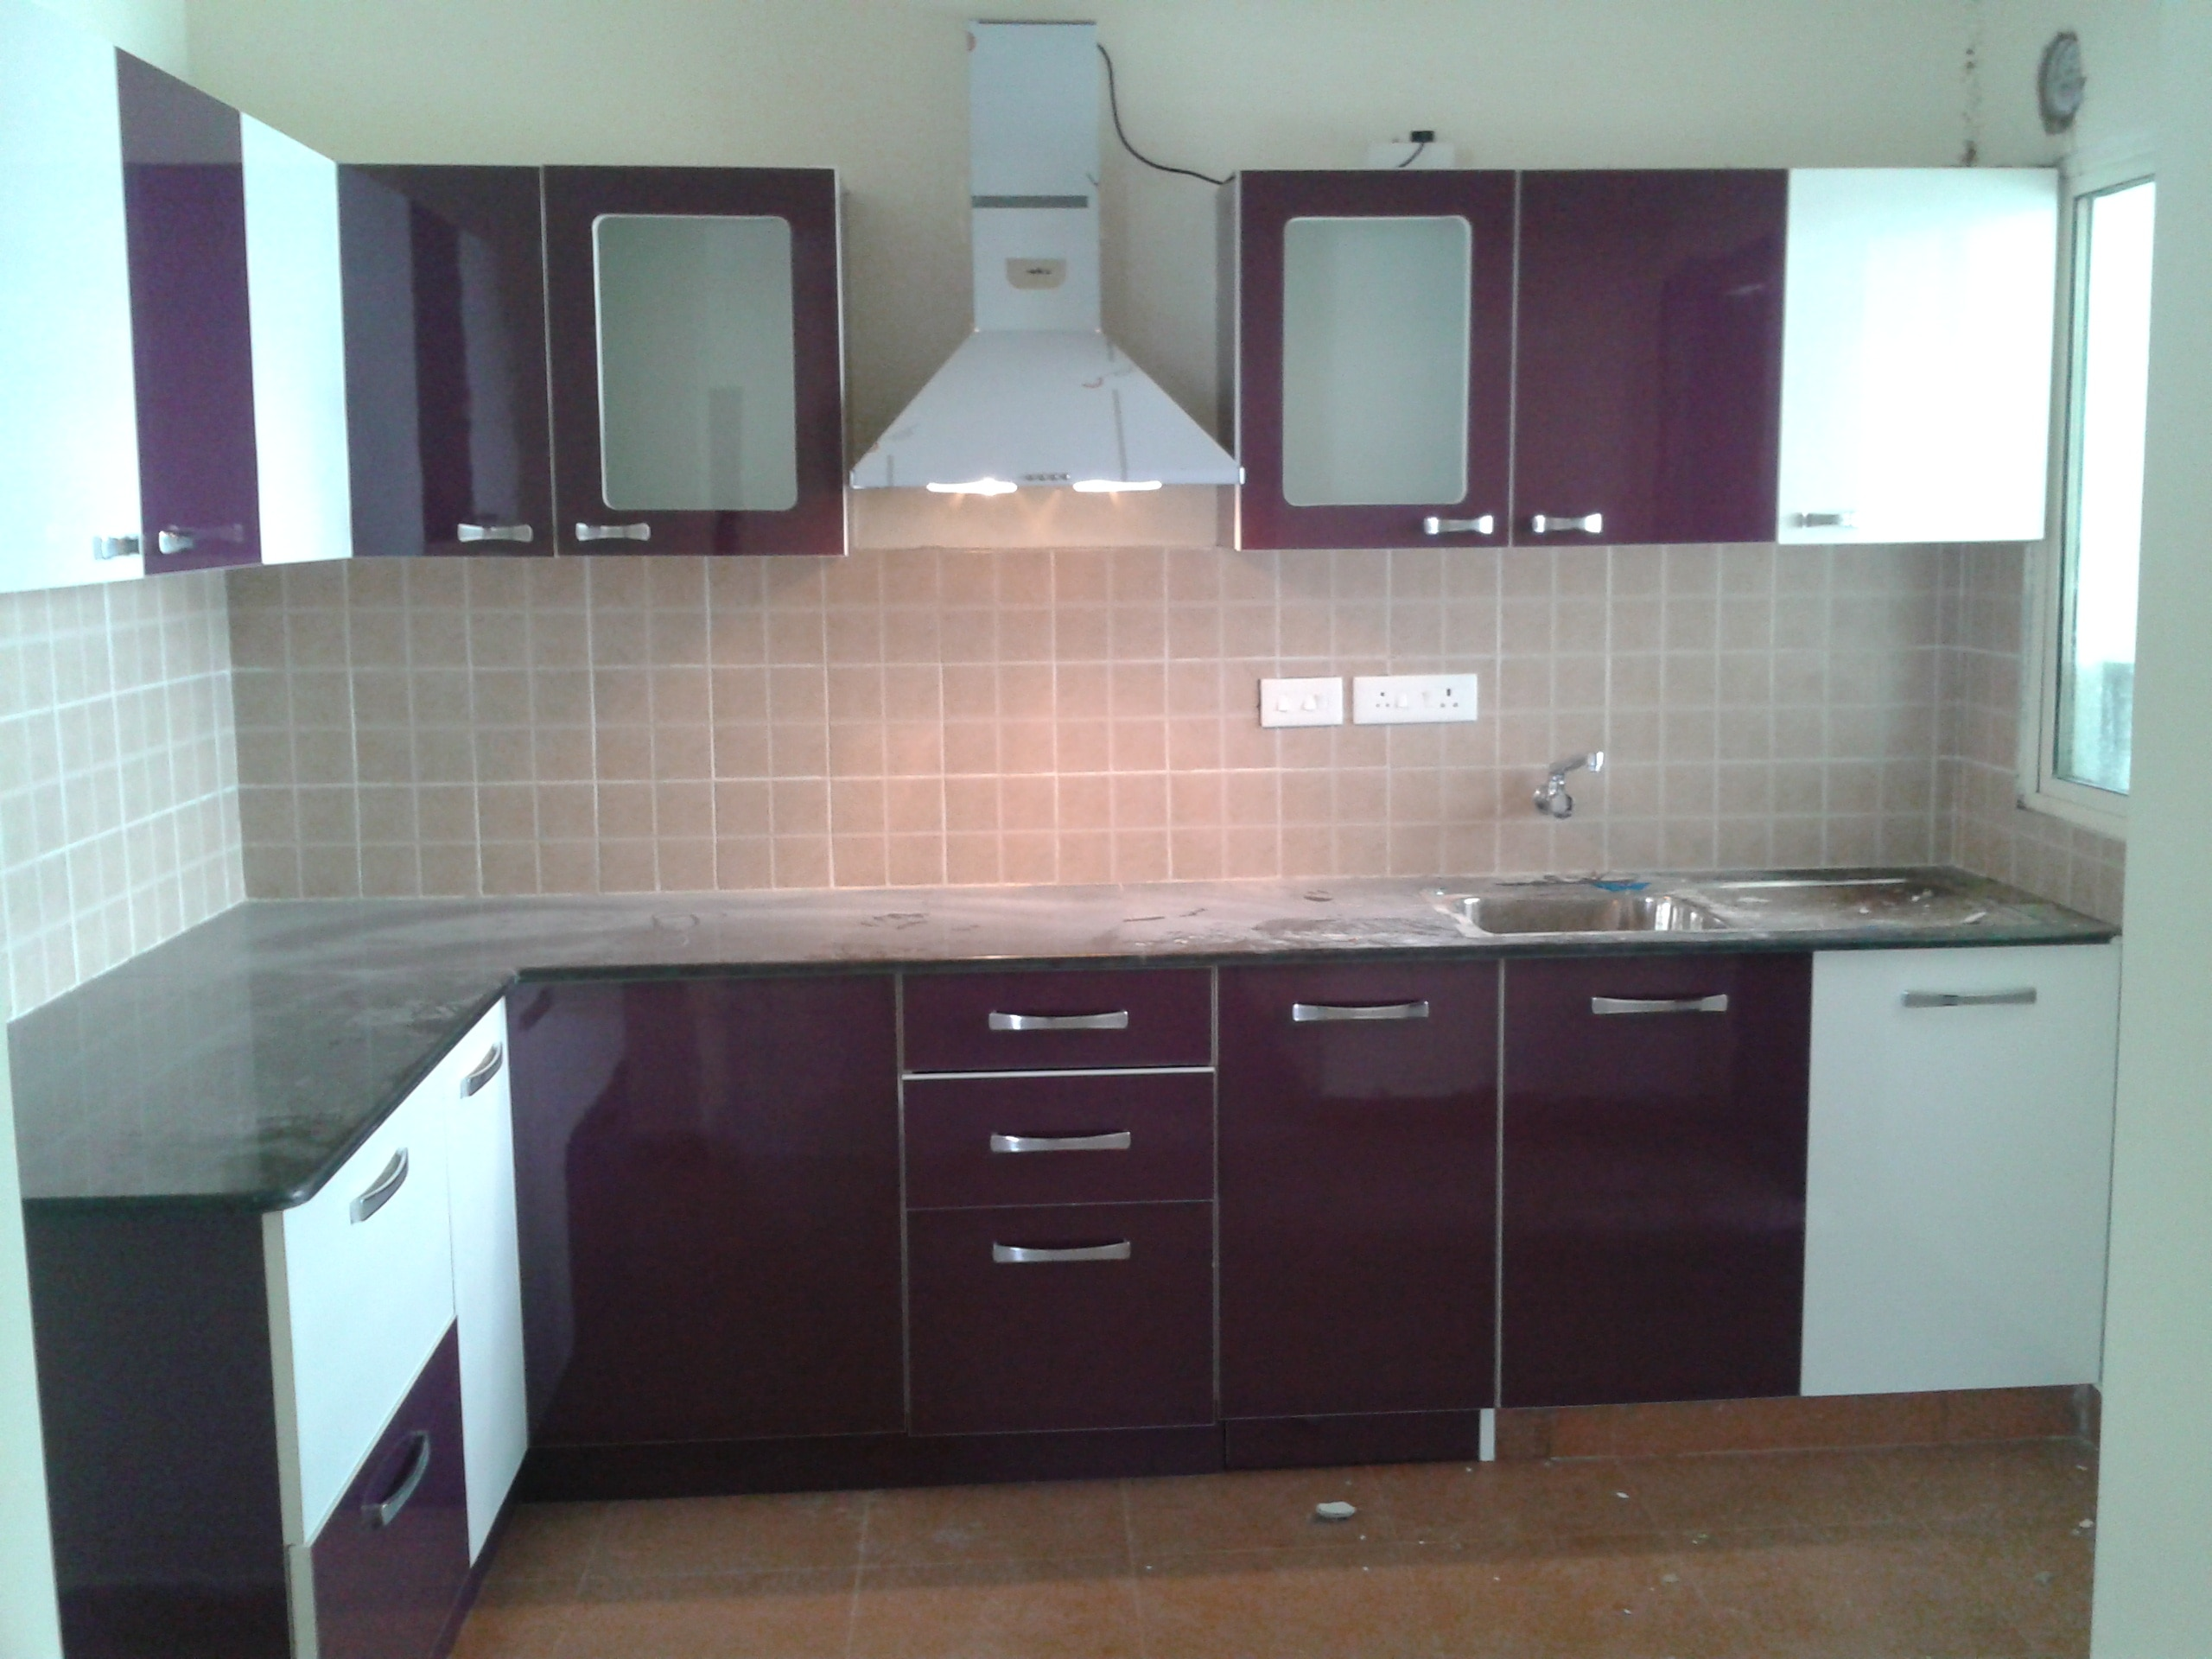 modular kitchen cabinets price in india kitchen modular kitchen design gharexpert indian designs